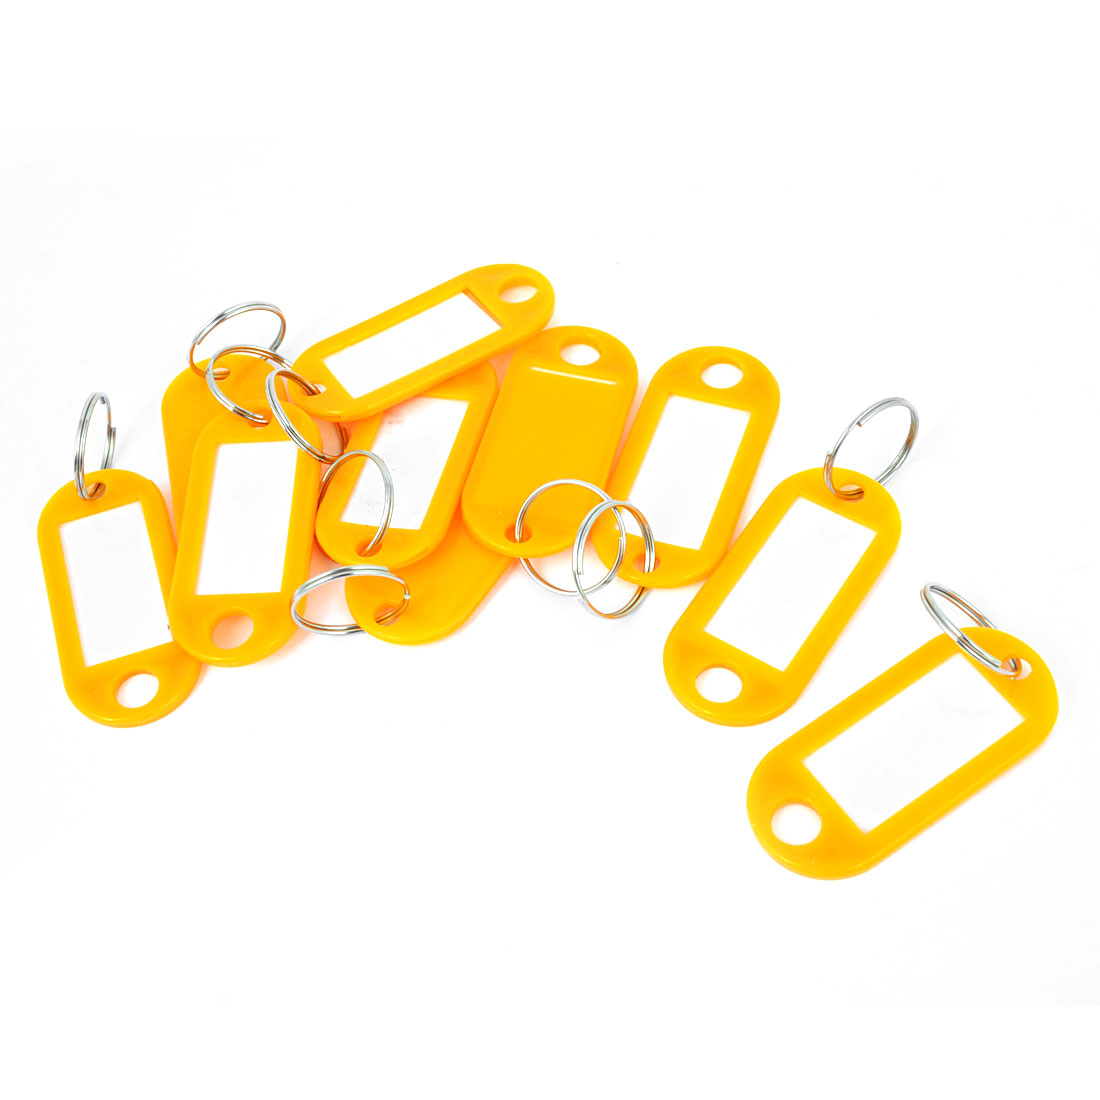 Plastic Key ID Name Card Label Tags Split Ring Keyring Keychain Orange 10 Pcs